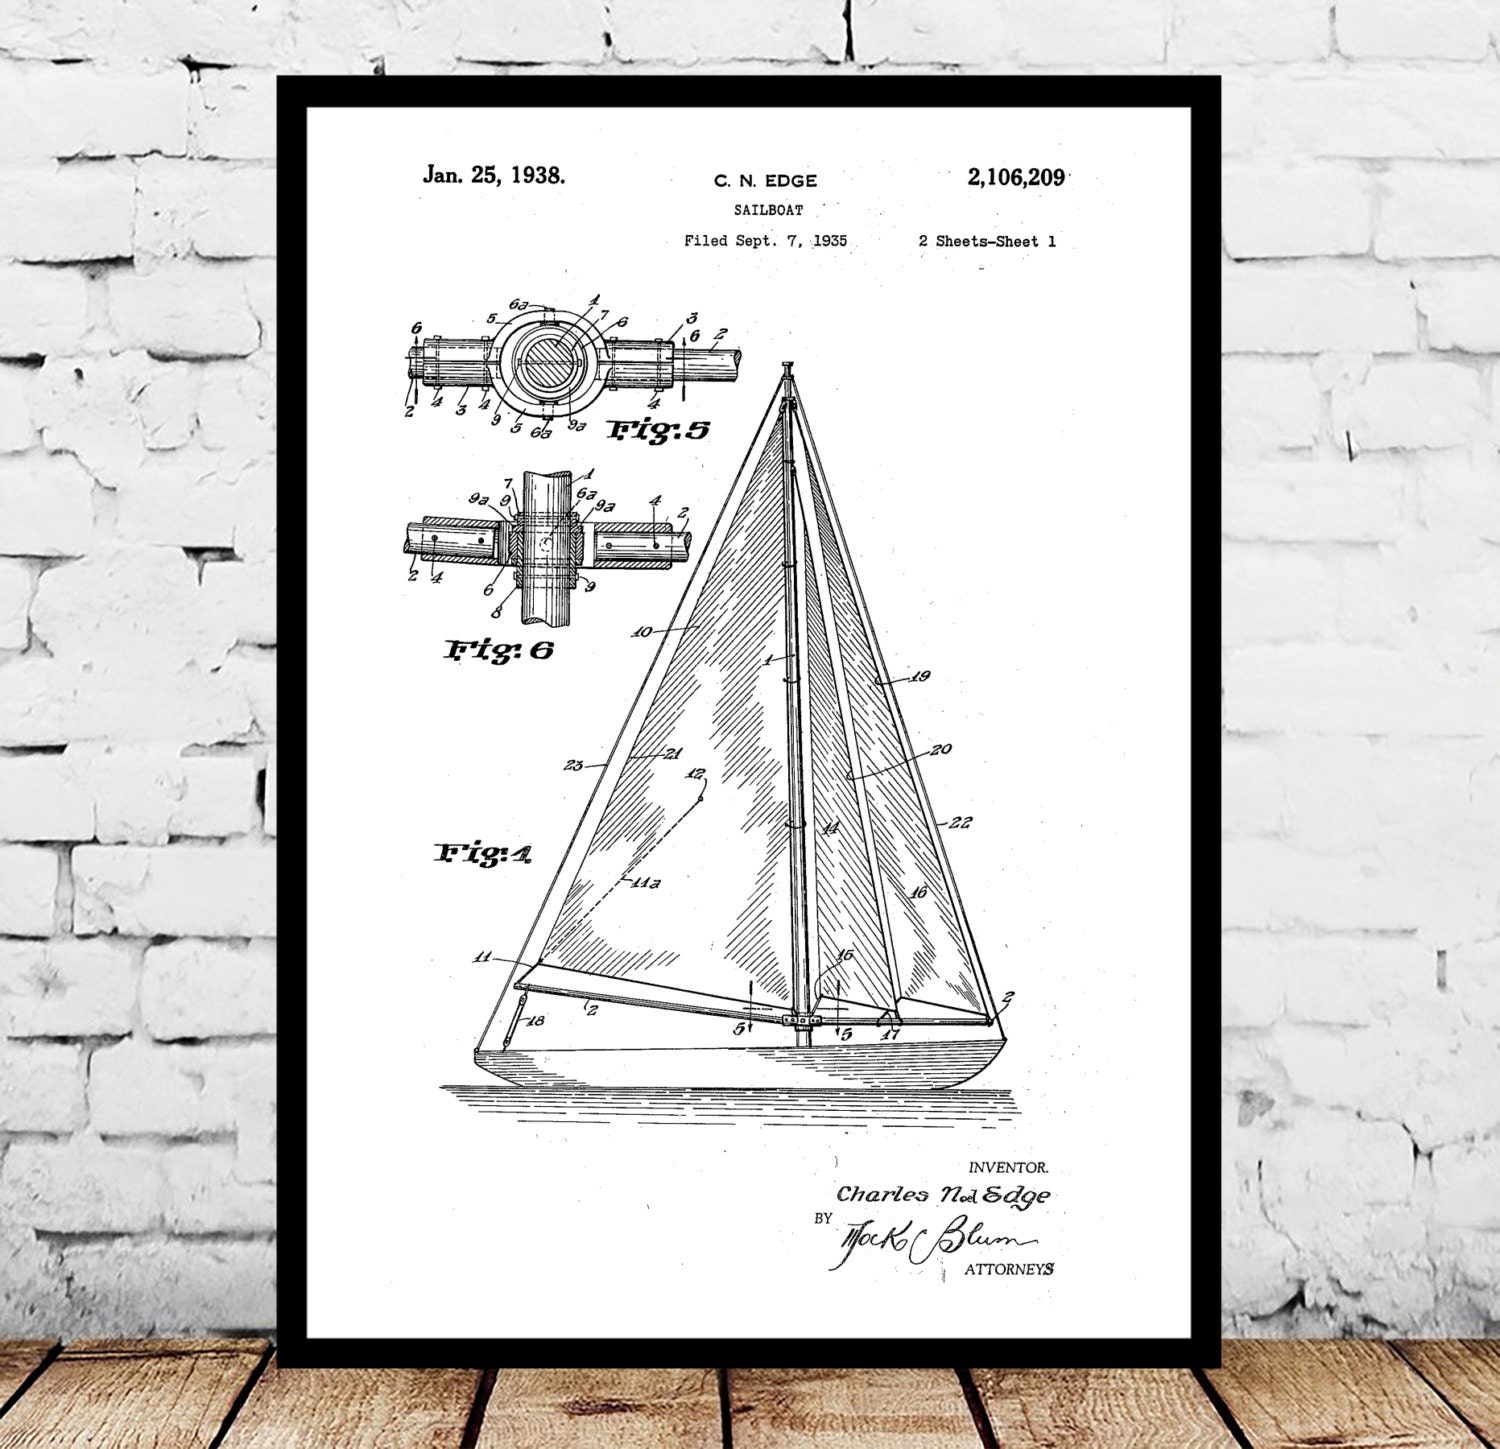 Sailboat print sailboat poster sailboat patent sailboat decor sailboat print sailboat poster sailboat patent sailboat decor sailboat art sailboat wall art sailboat blueprint nautical design malvernweather Gallery